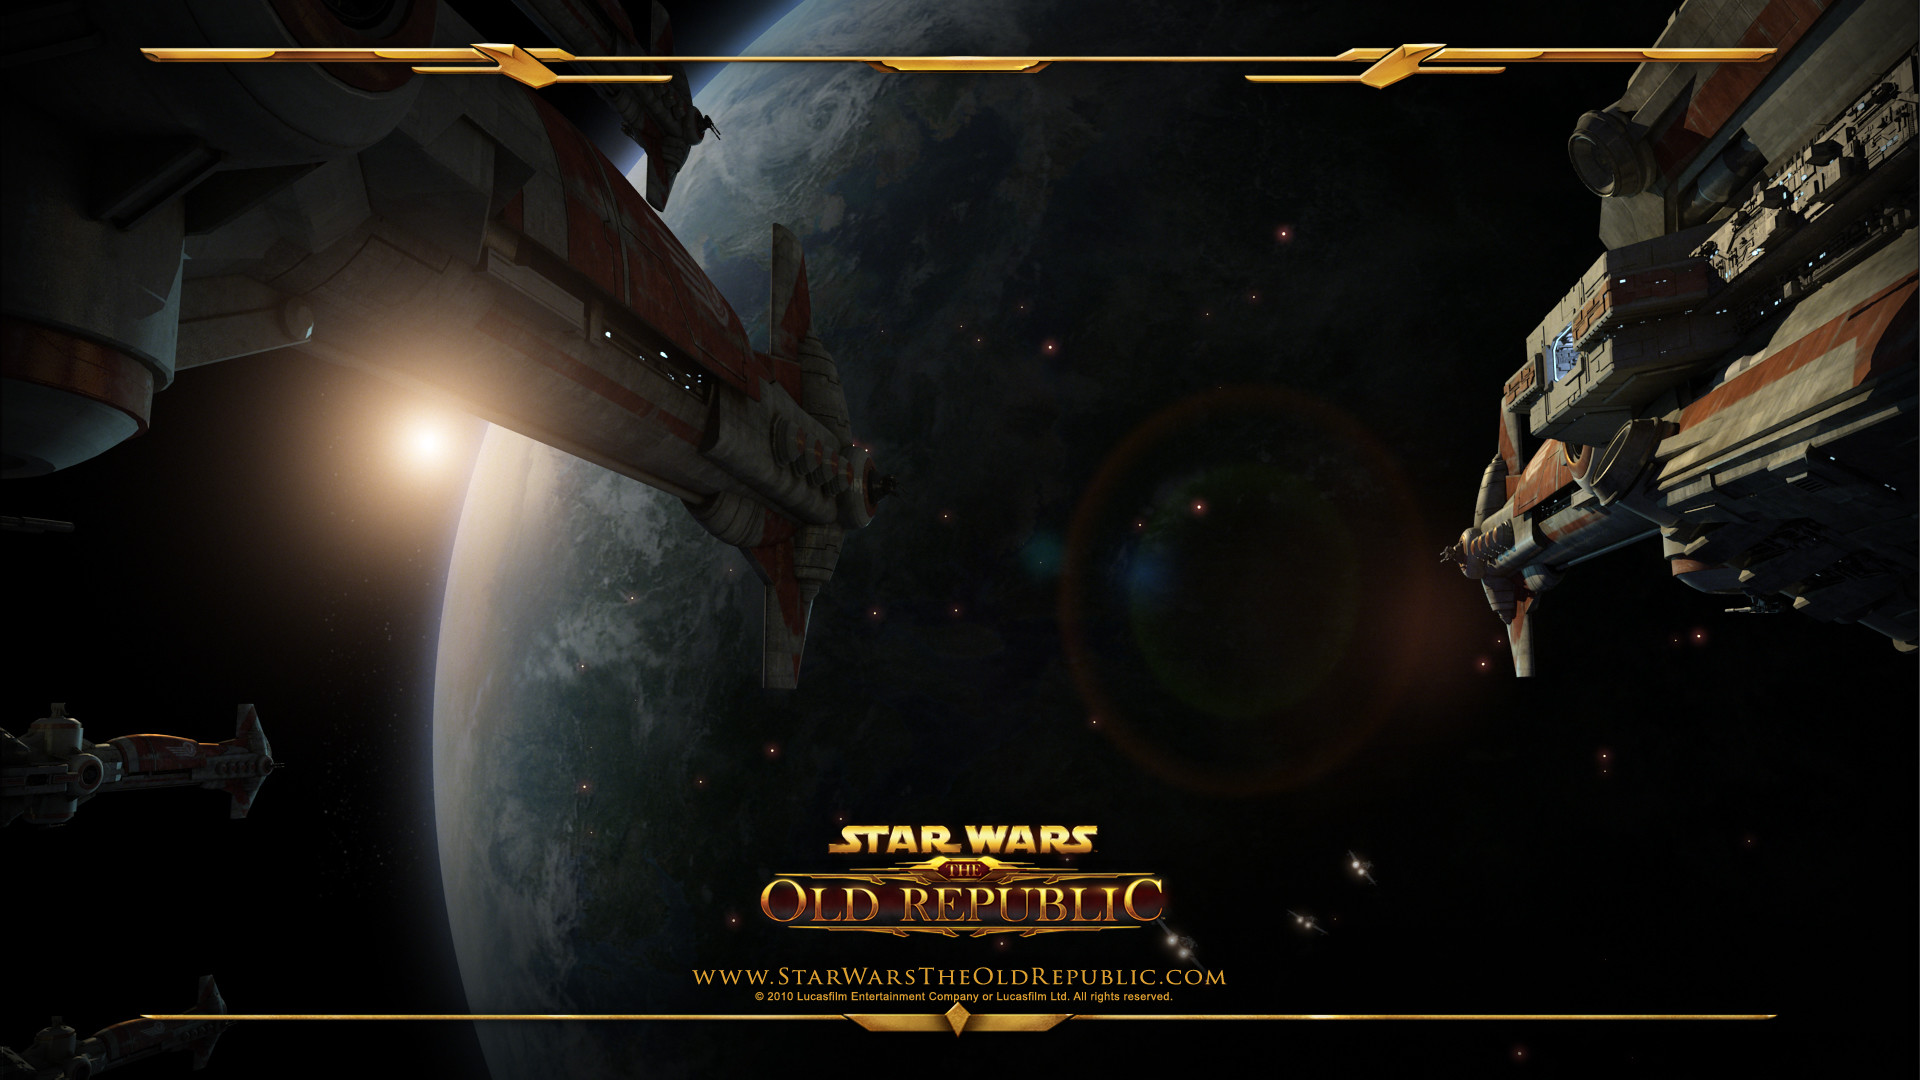 swtor wallpapers 1336 x 768 (82+ images)